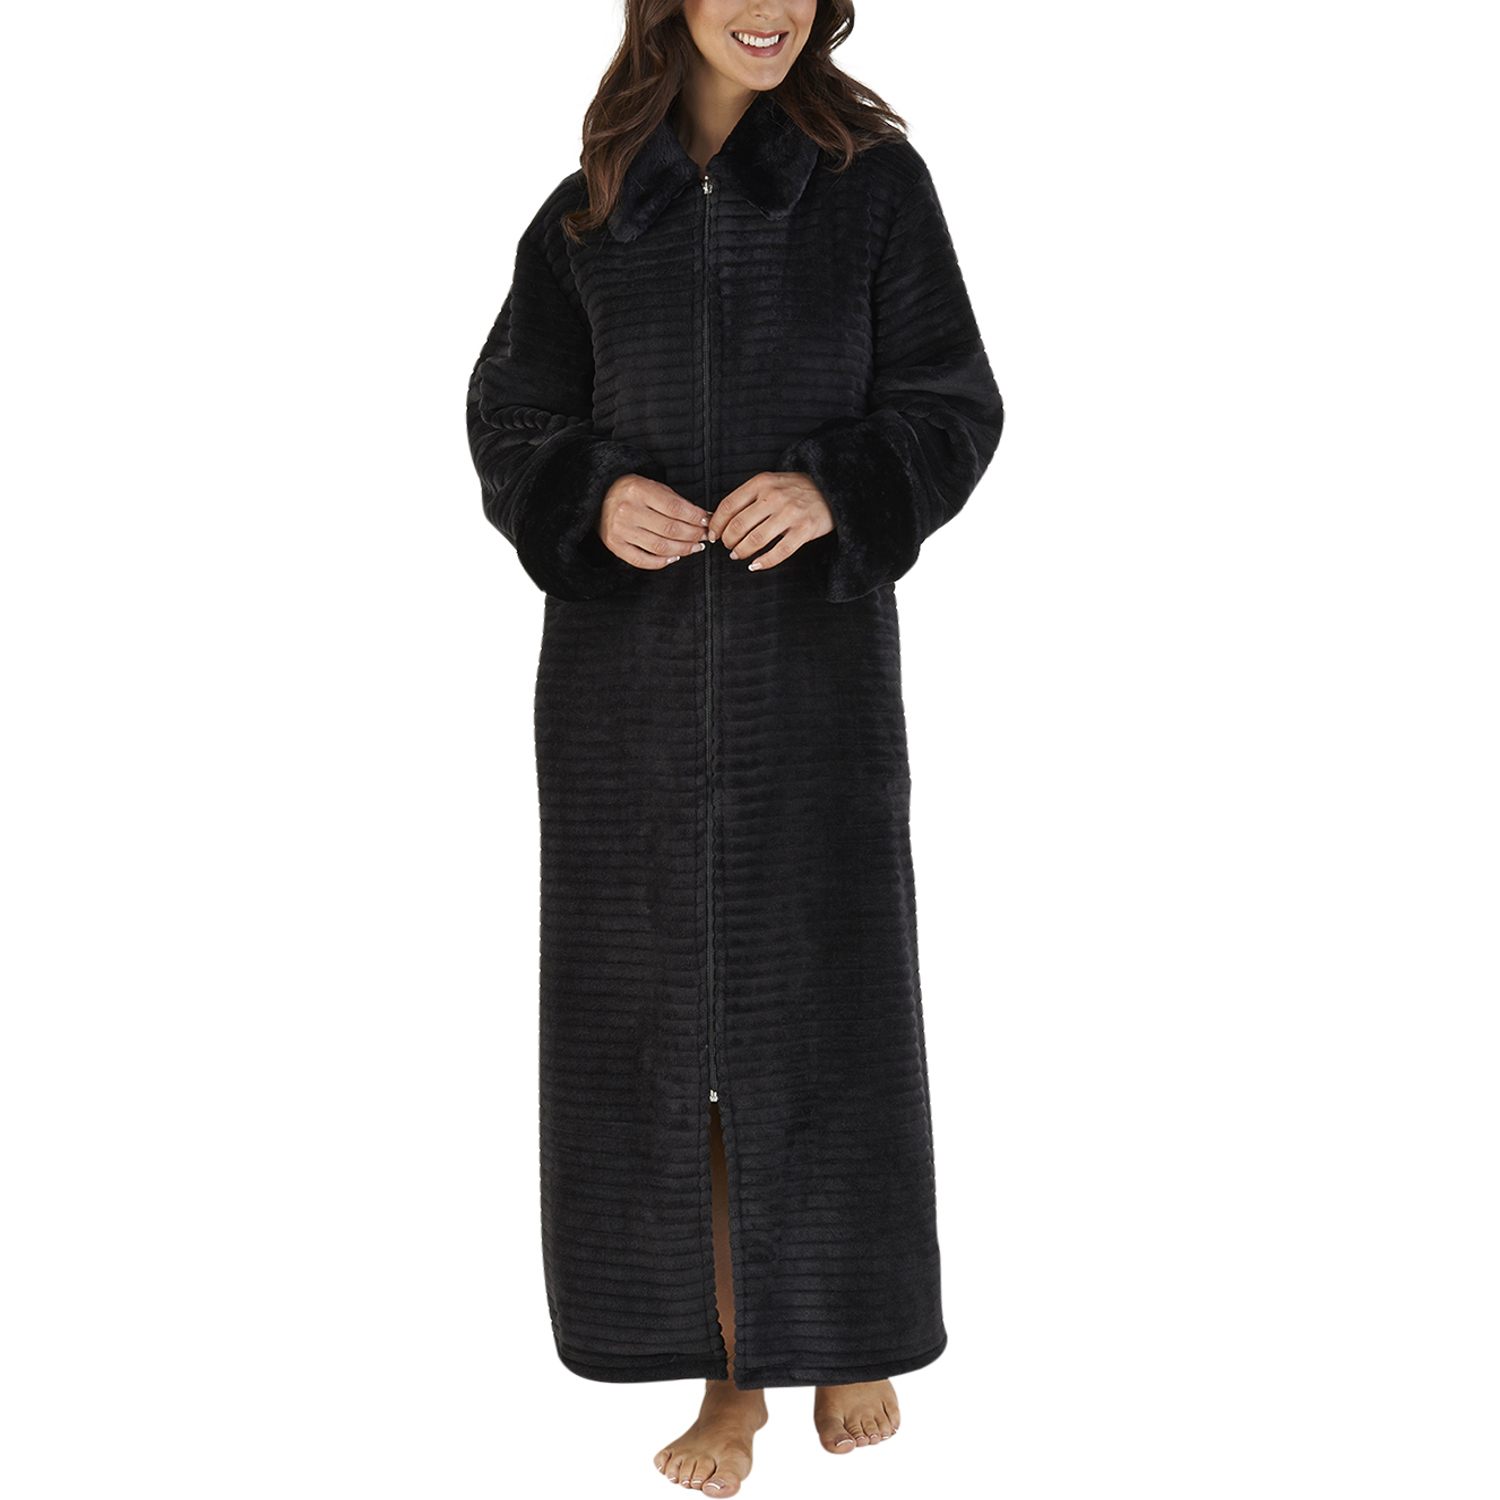 Women's Cotton, Dress-Style Bath Robe, Housecoat Dressing Gown, Zip Up and Belt See more like this New Women Girl Cotton Housecoat Dressing Gown Bathrobe Zip Up Size UK 8 10 12 14 Brand New.